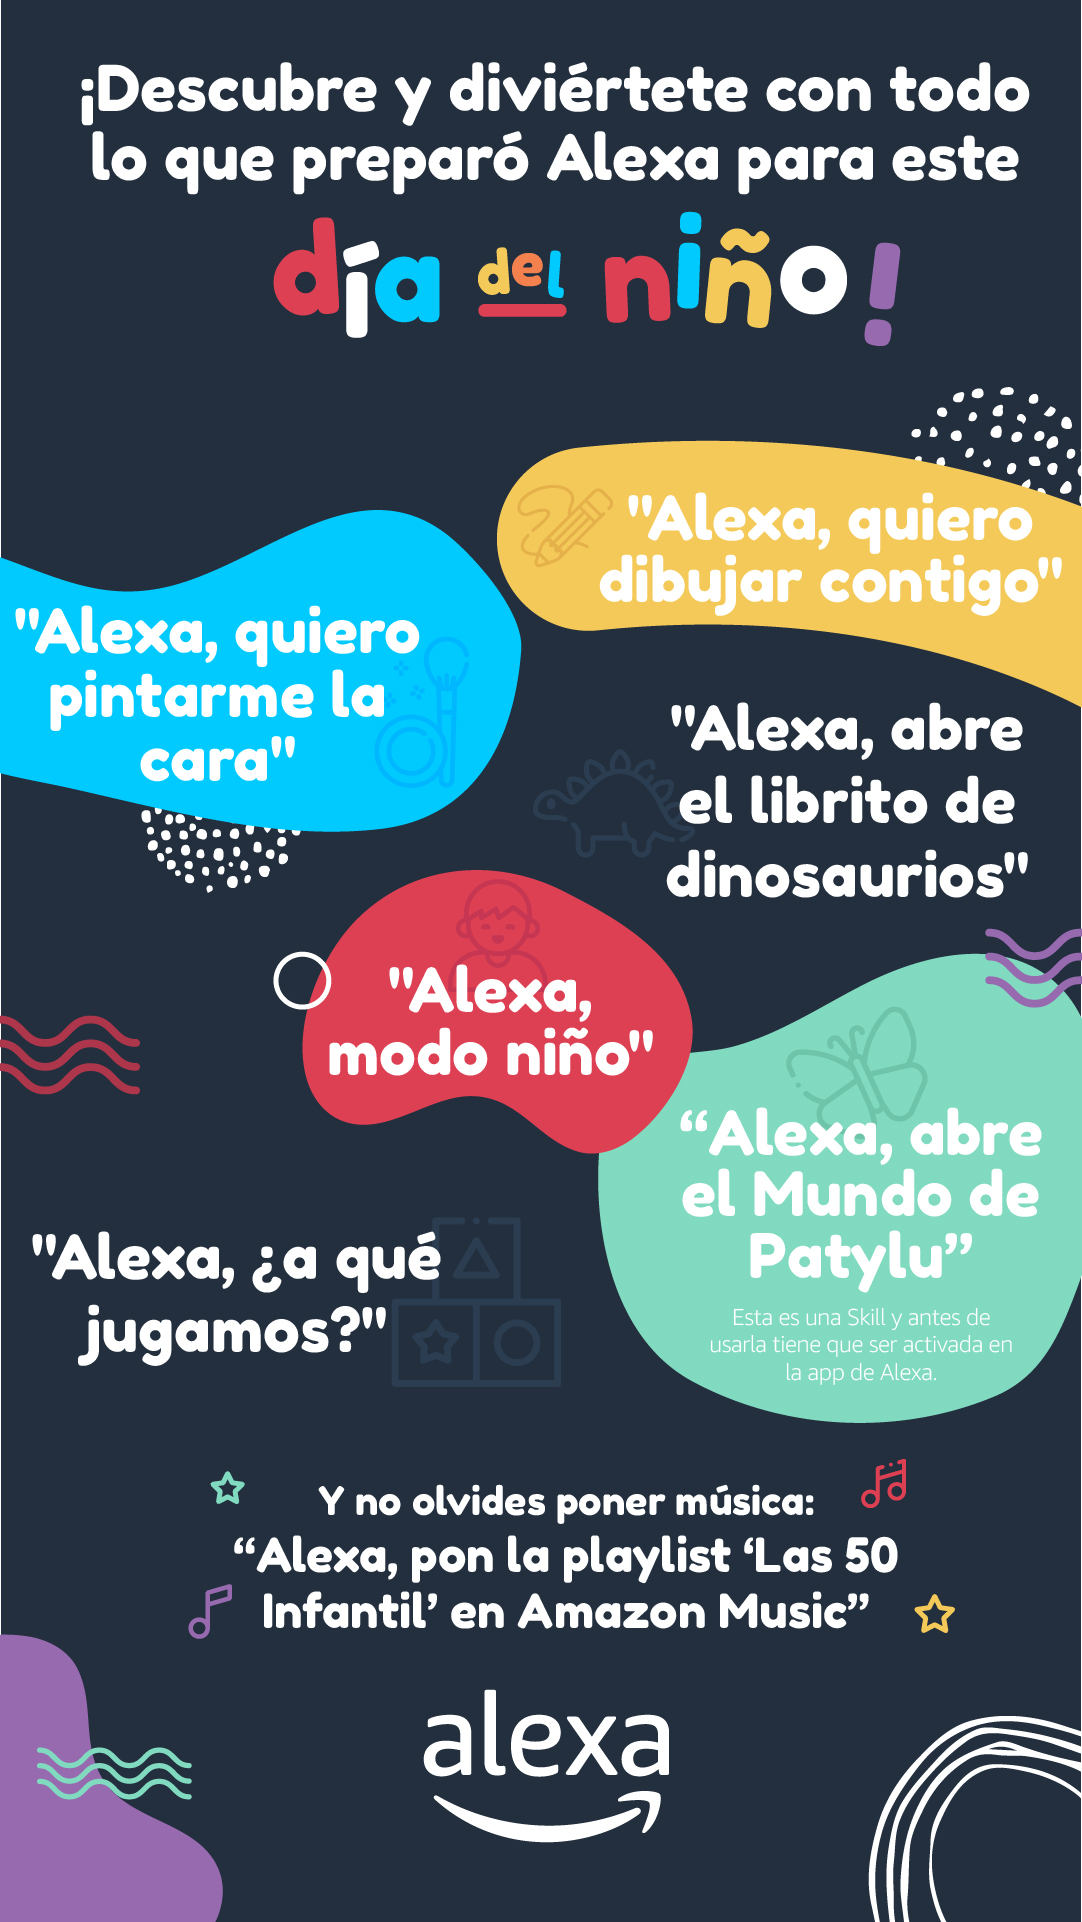 Arma la kermés del Día del Niño con Alexa y Amazon Devices